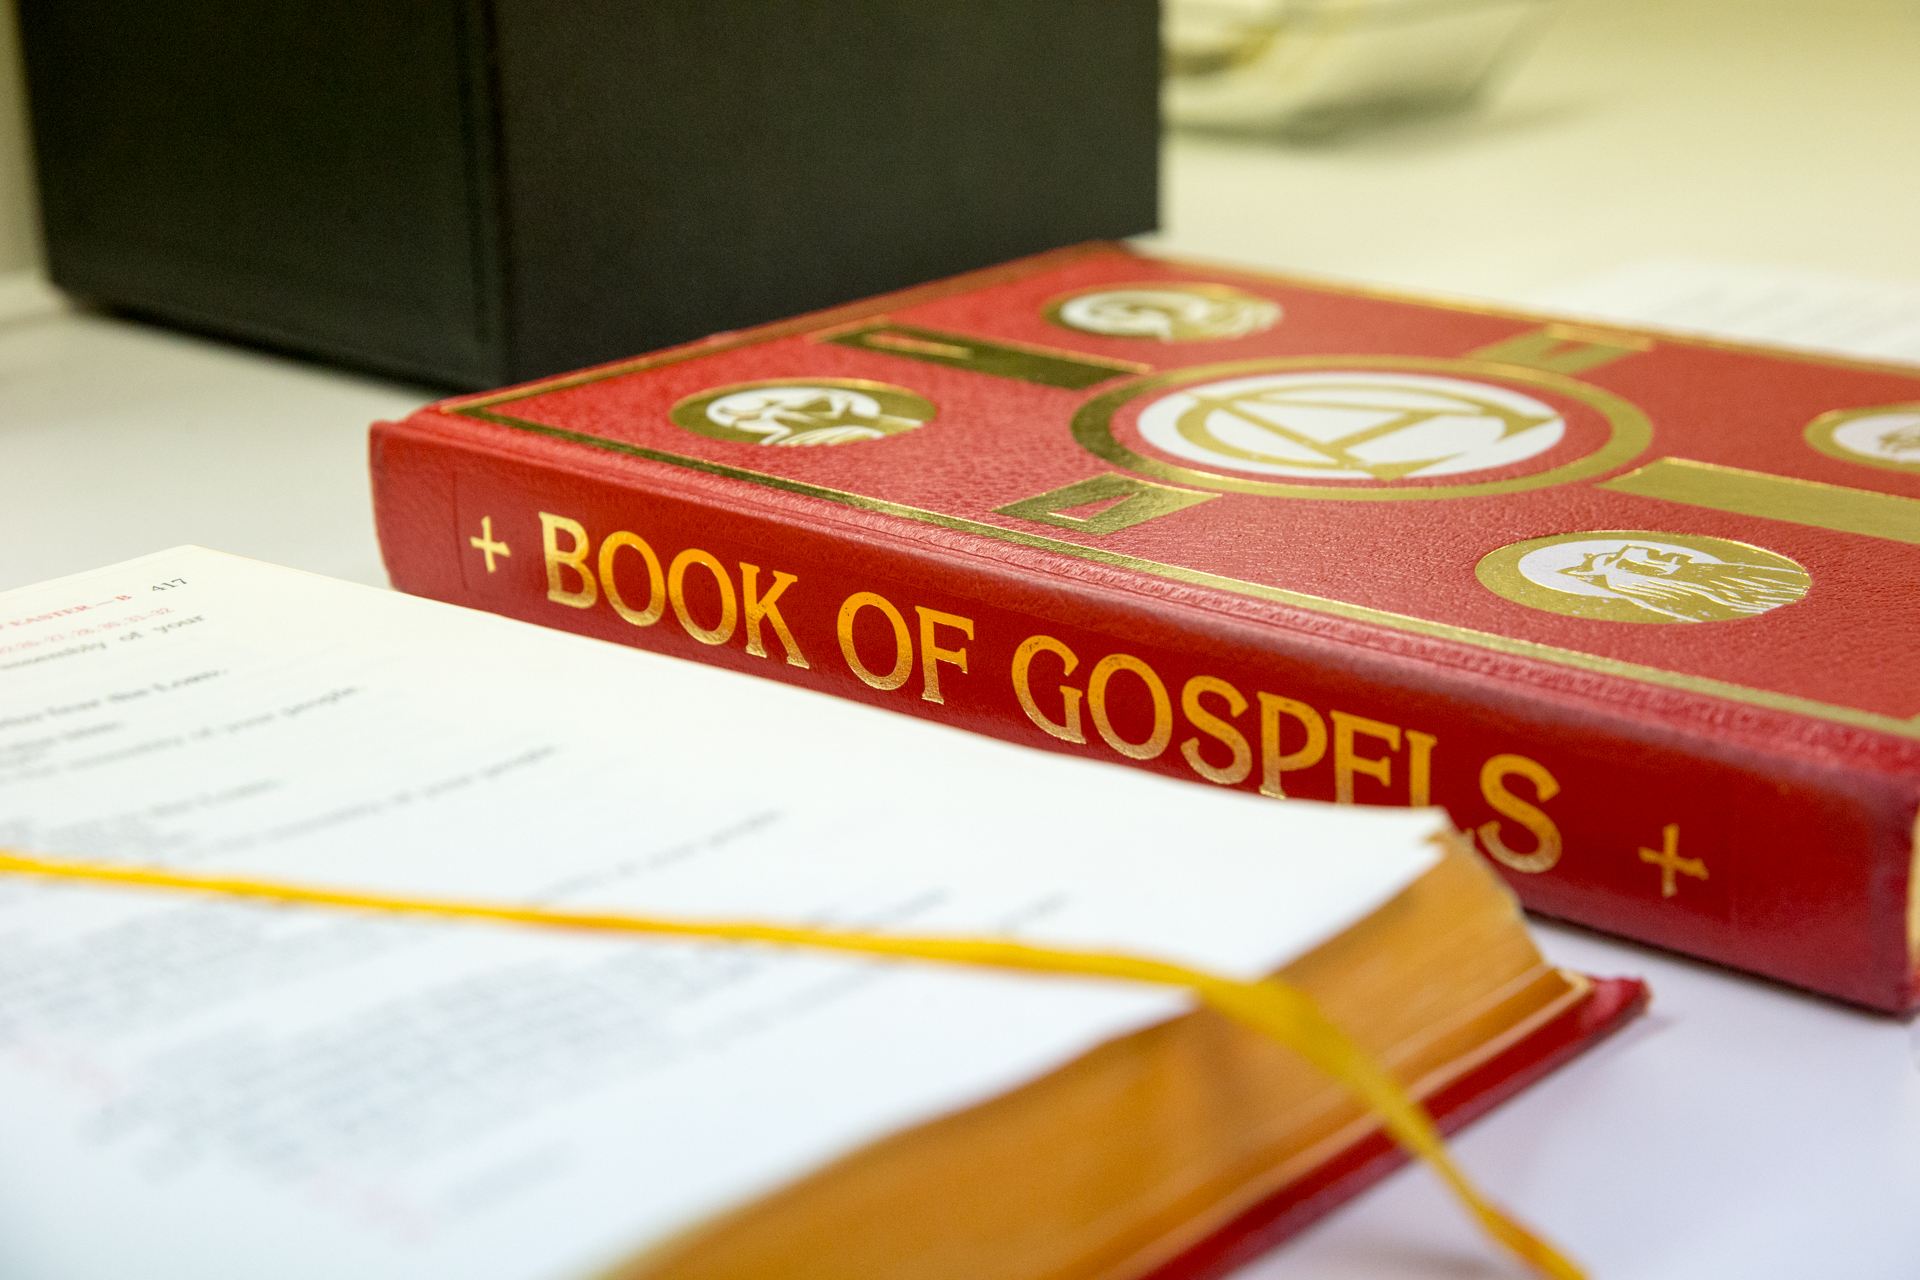 eCatholic stock photo 112 Bk of gospels3